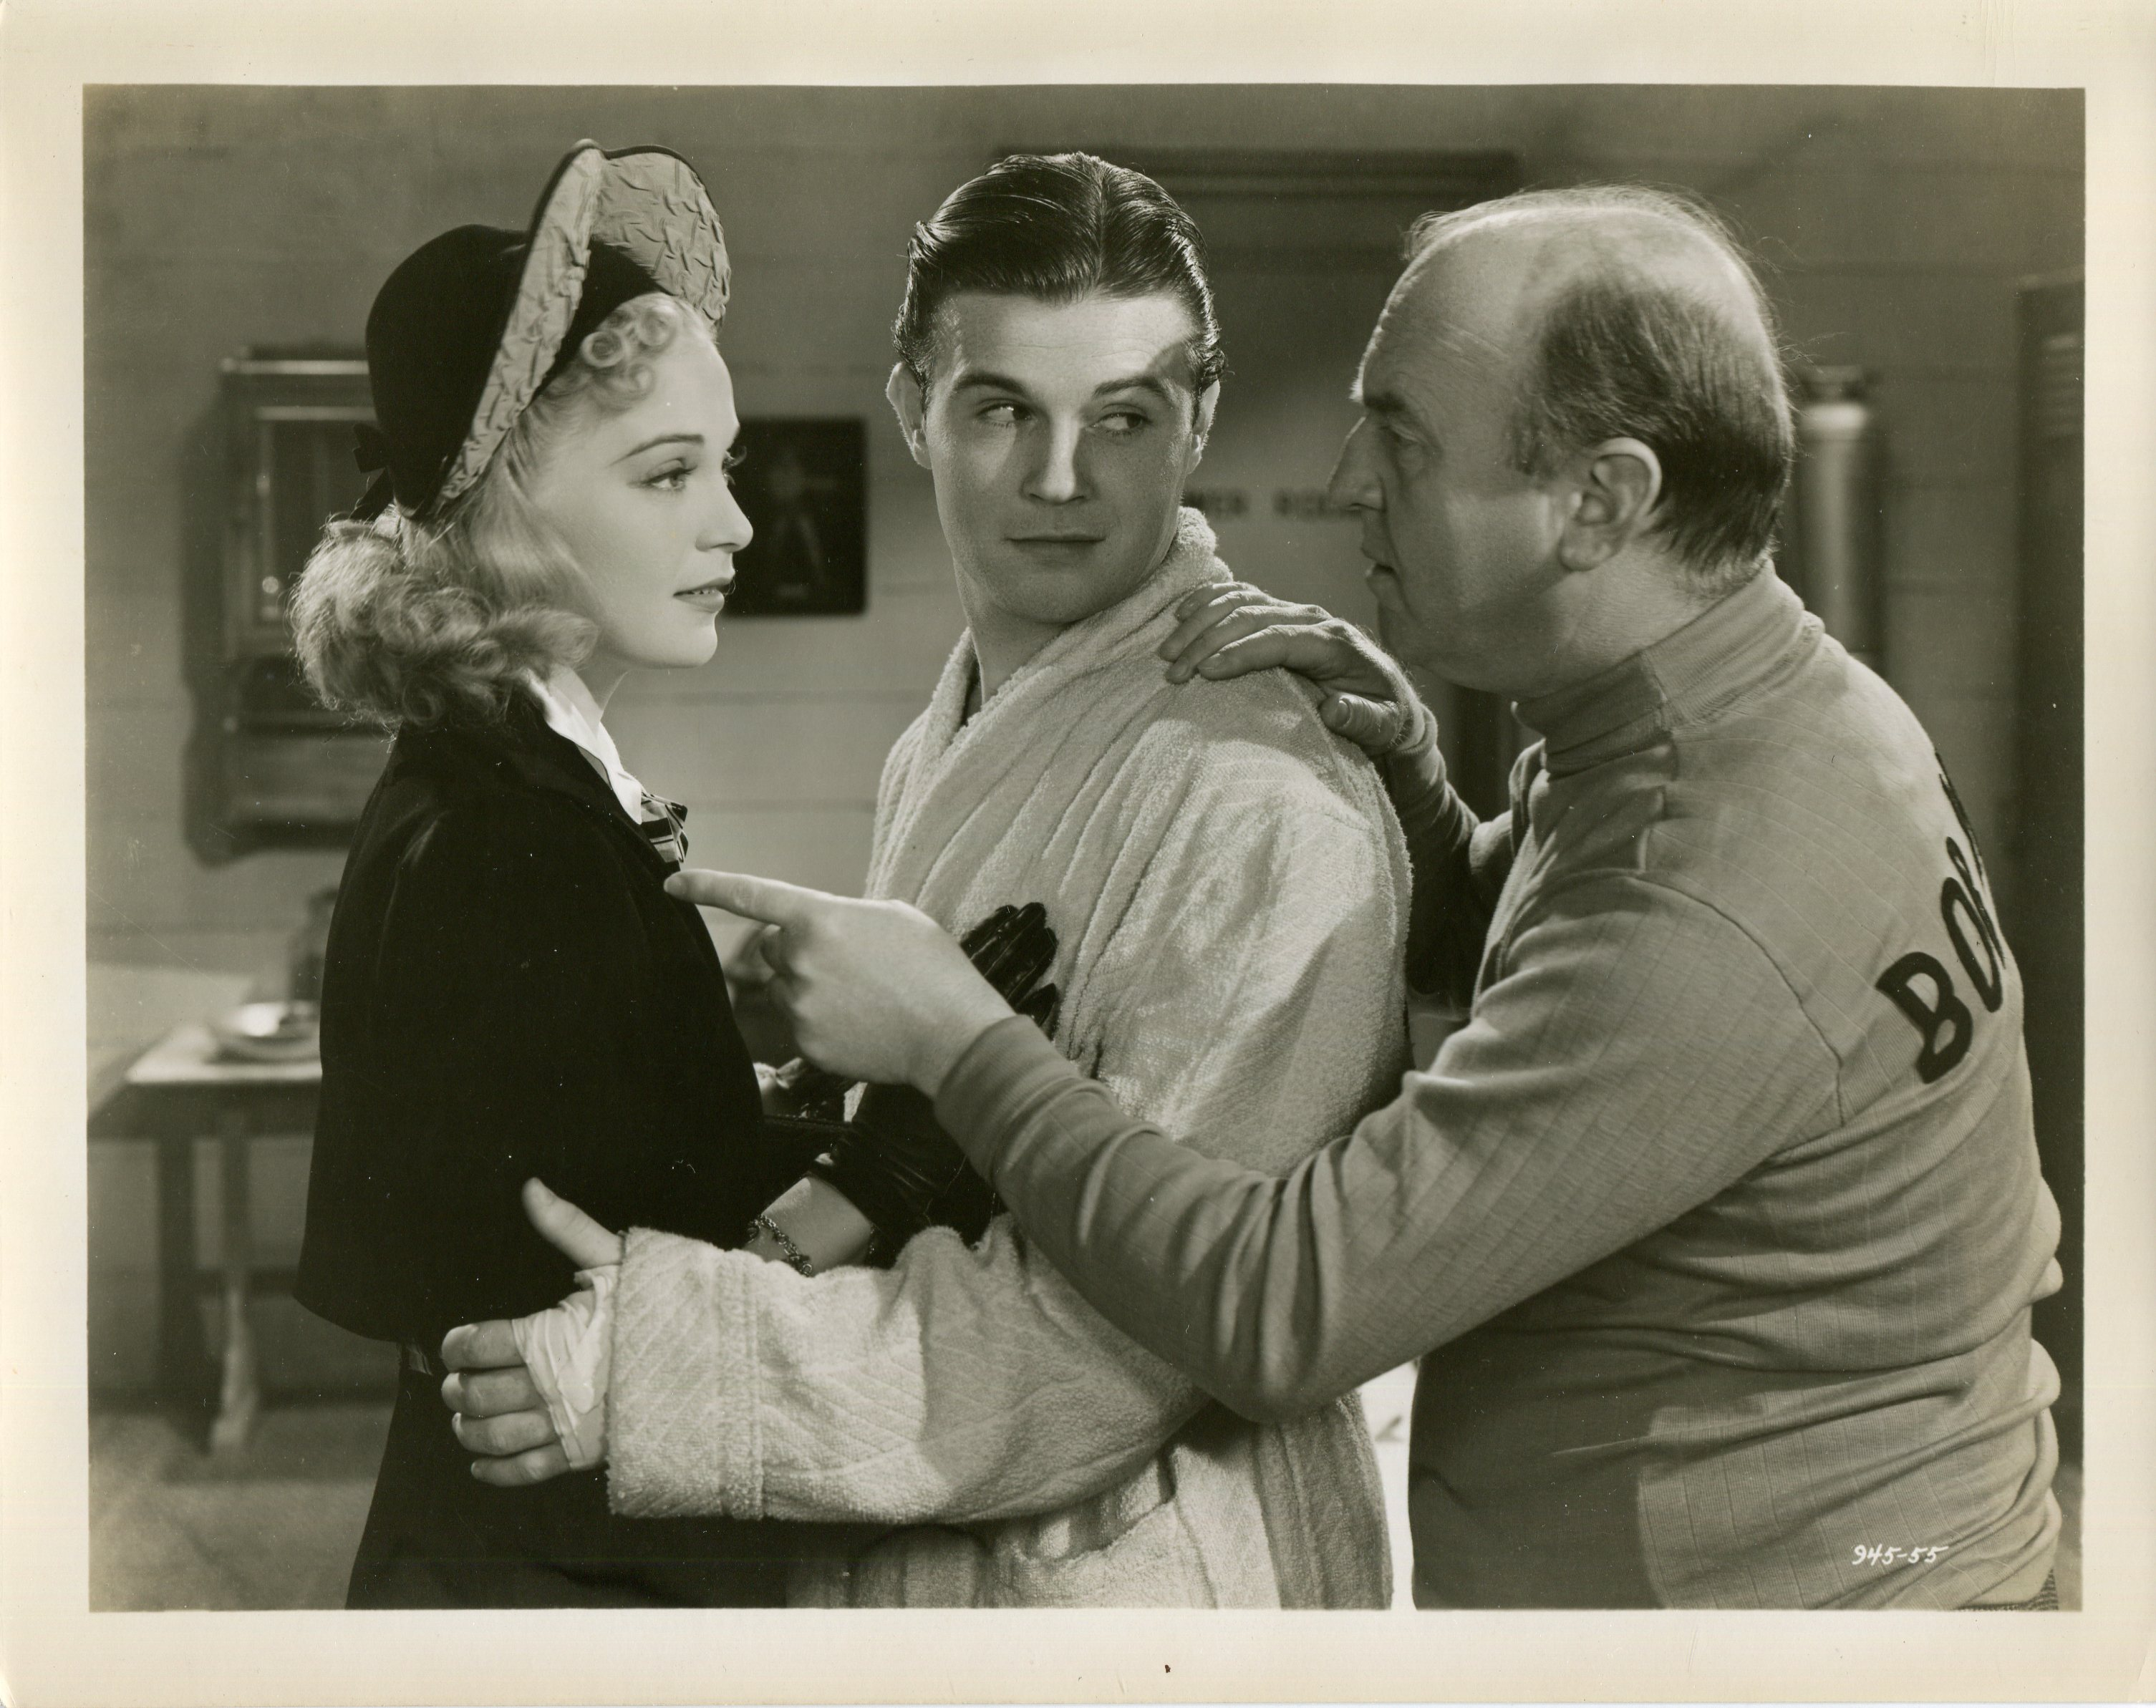 Tom Brown, William Frawley, and Nan Grey in Ex-Champ (1939)